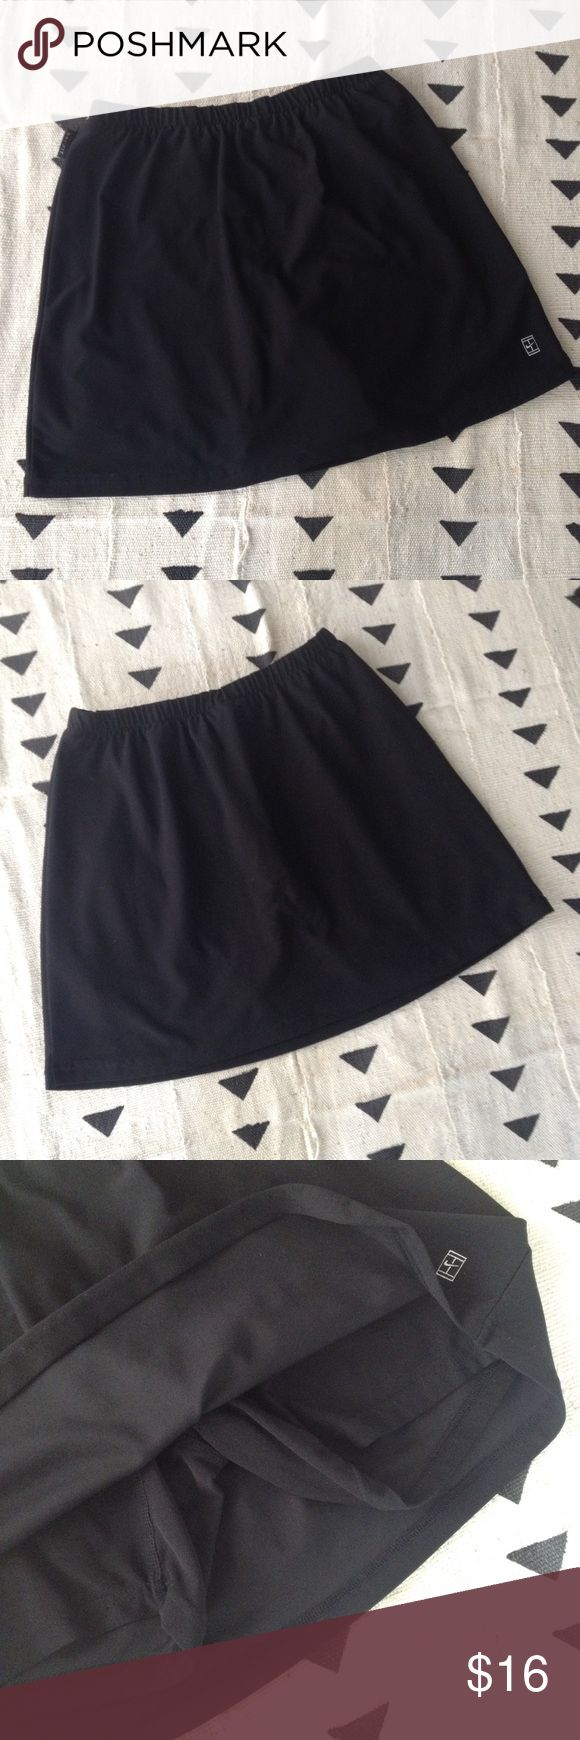 Nike Dri Fit skirt skort black stretch small Soft and stretchy Nike skirt-short combo. All black. In very good condition. Measurements are available in the photos - the waistband is quite stretchy. Size small. Check out my other listings for cute activewear! Nike Skirts